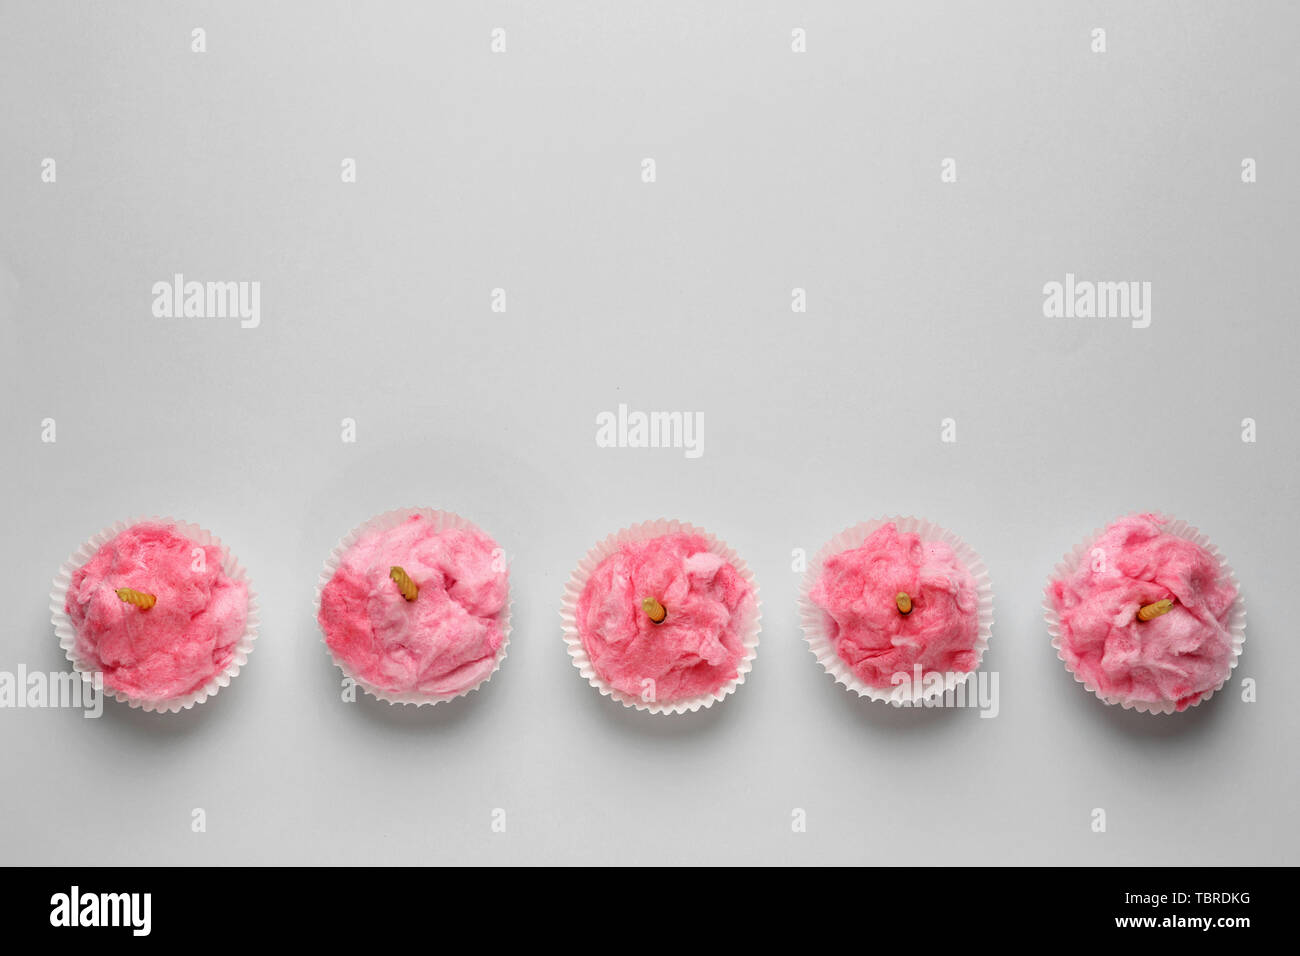 Tasty cotton candy with candles on grey background - Stock Image